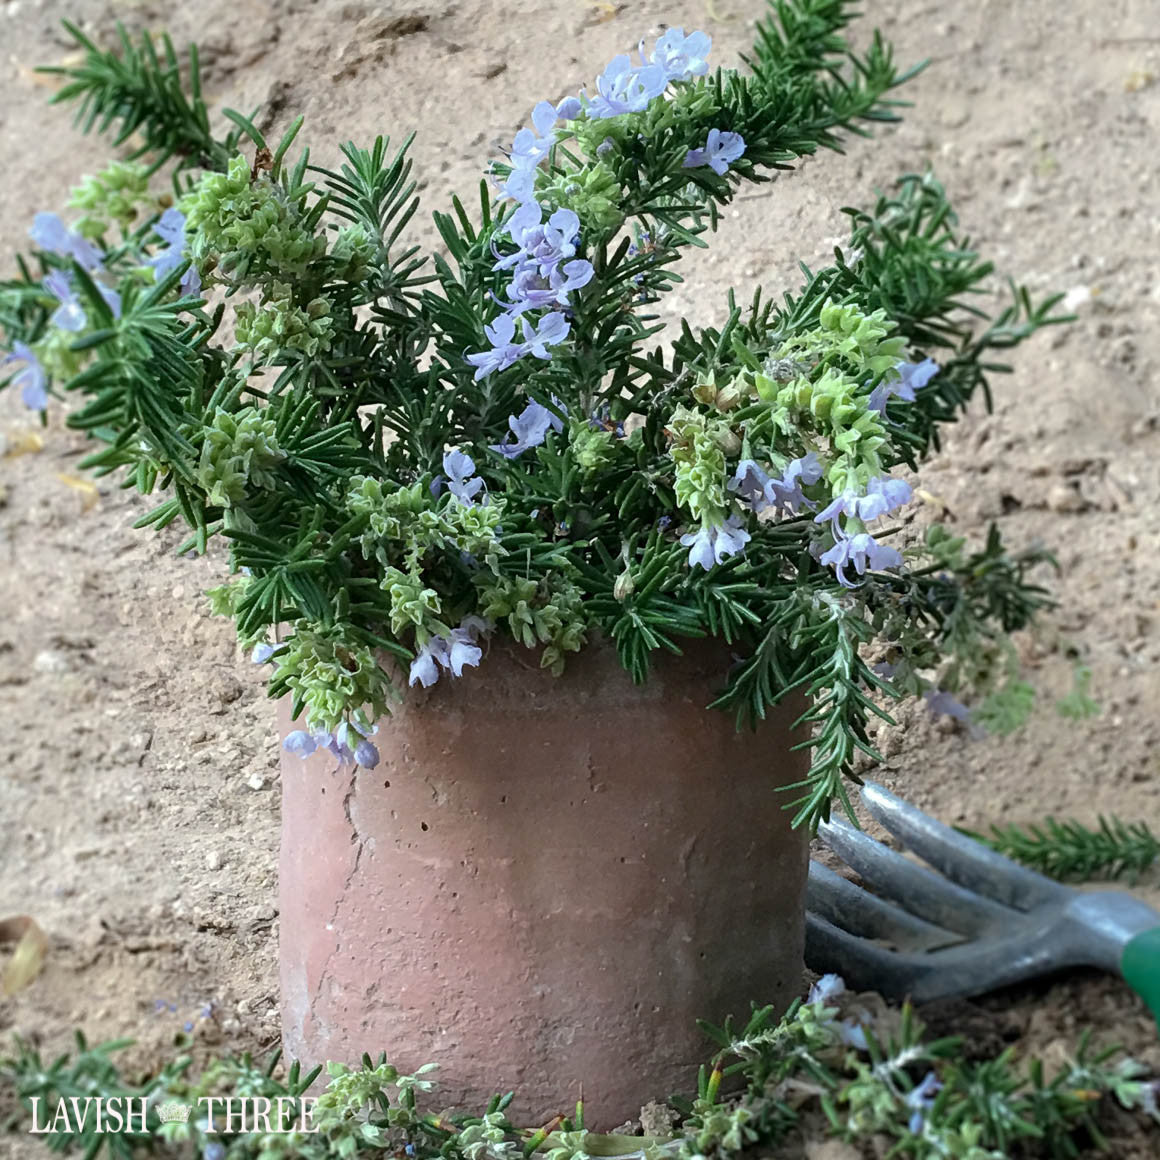 Garden cement Flower herb pot planter Lavish Three